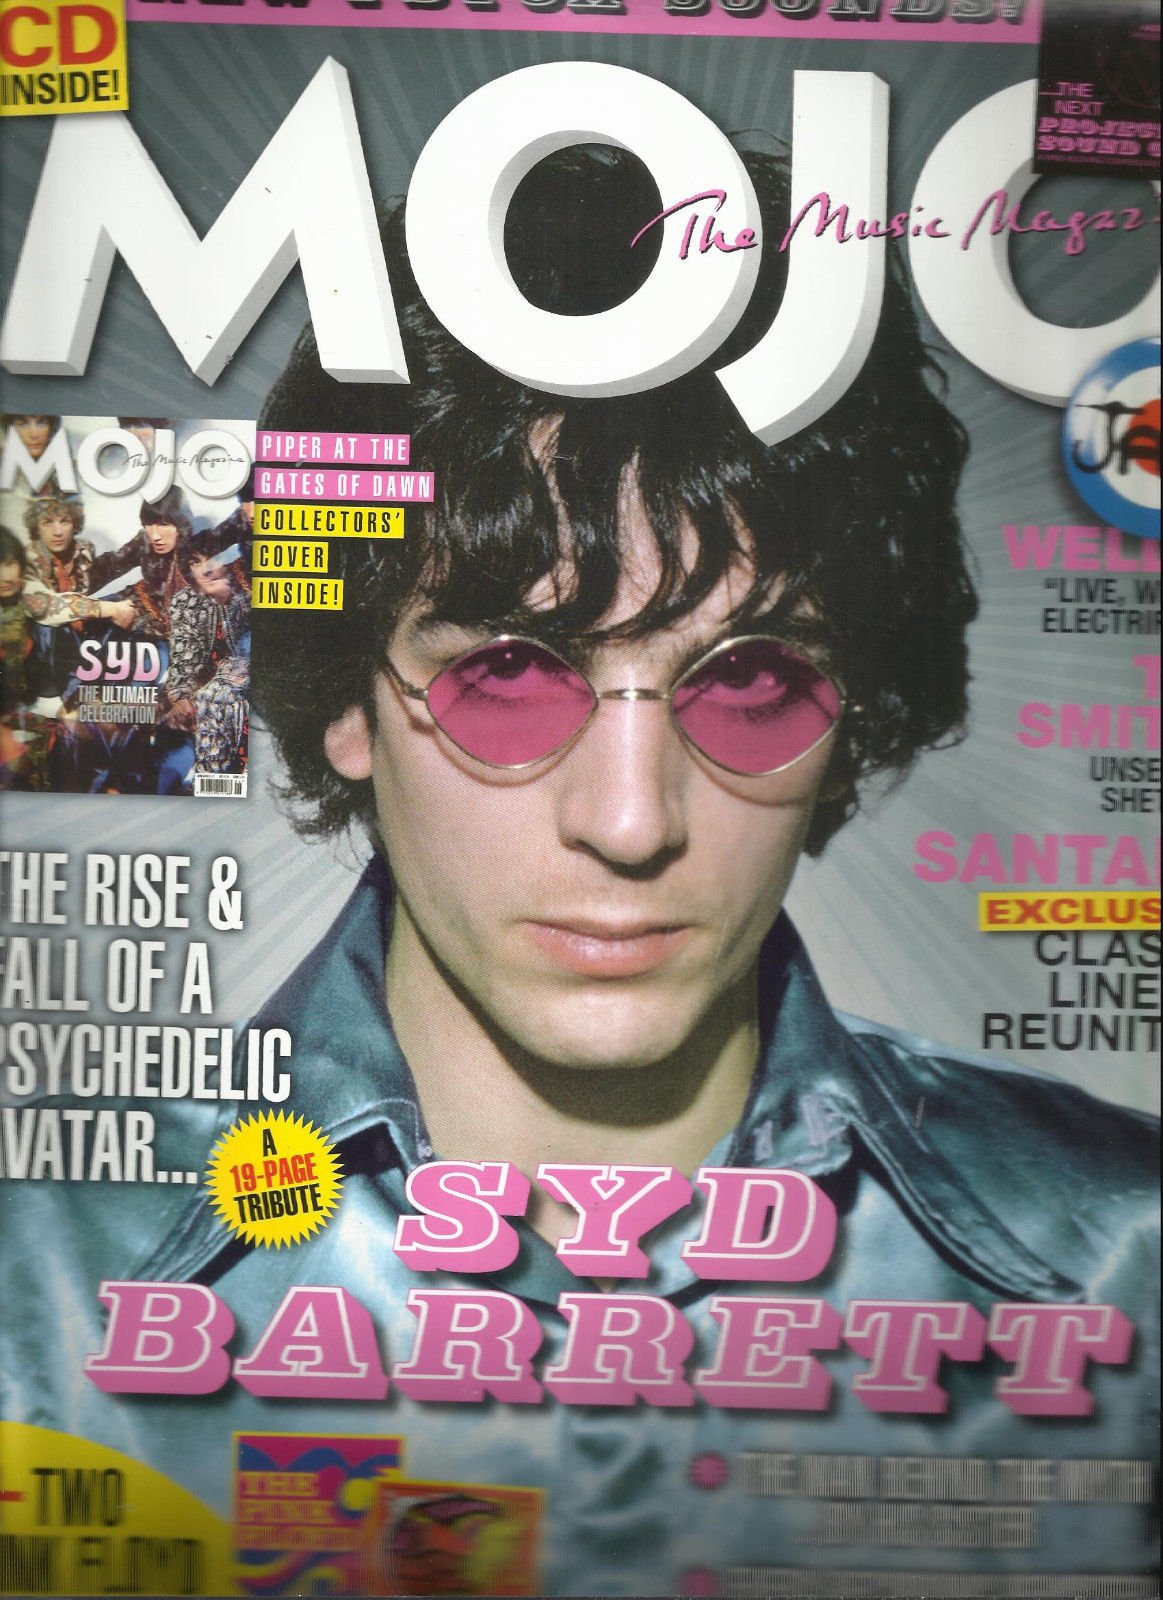 MOJO, THE MUSIC MAGAZINE, JUNE, 2016 THE RISE & FALL OF A PSYCHEDE LIC AVATAR (NOTE : SORRY, FREE CD ARE MISSING, JUST THE MAGAZINE ONLY.)